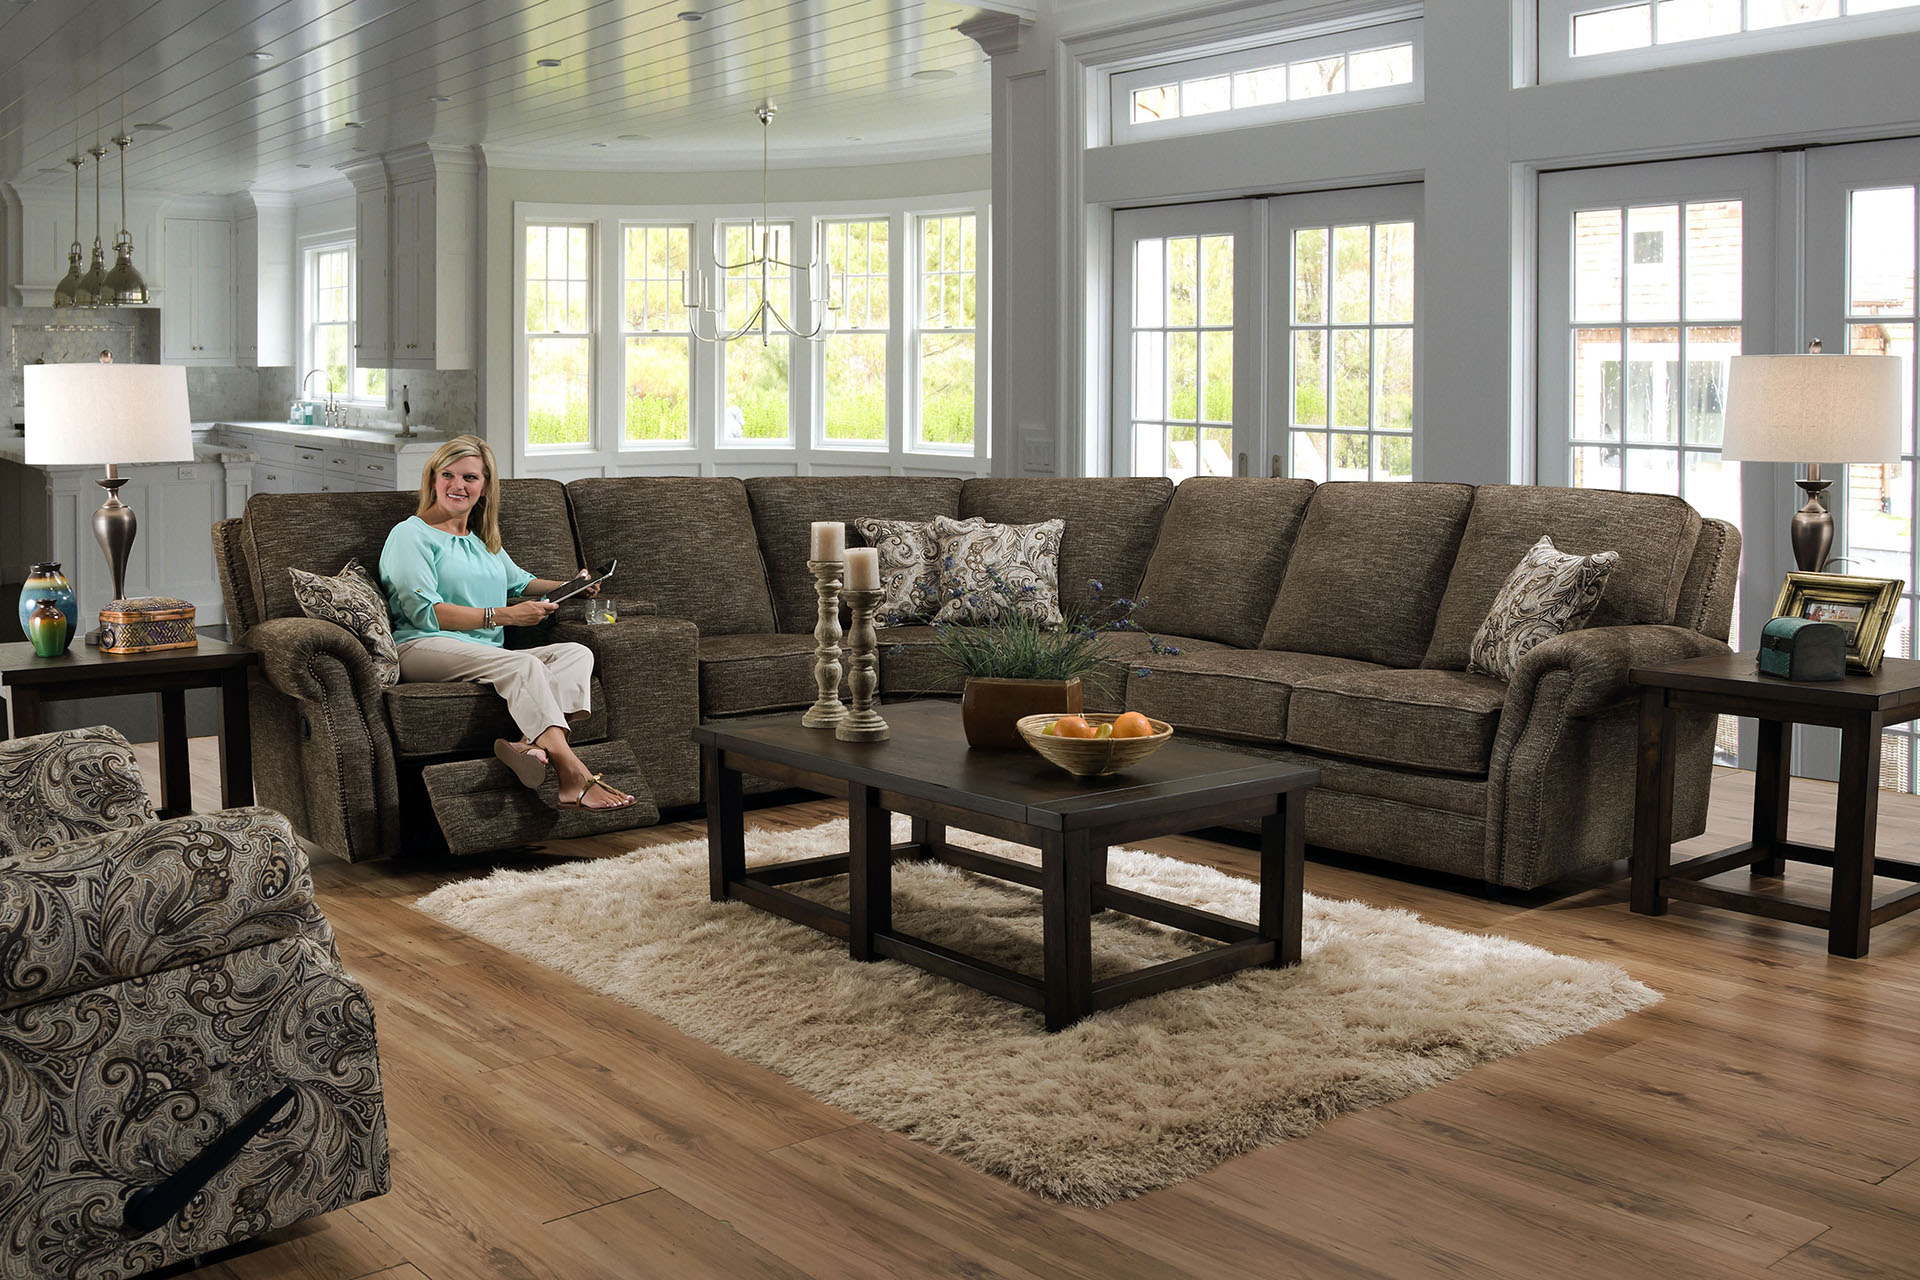 Home Express Furniture We Are Your Trusted Choice For Affordable